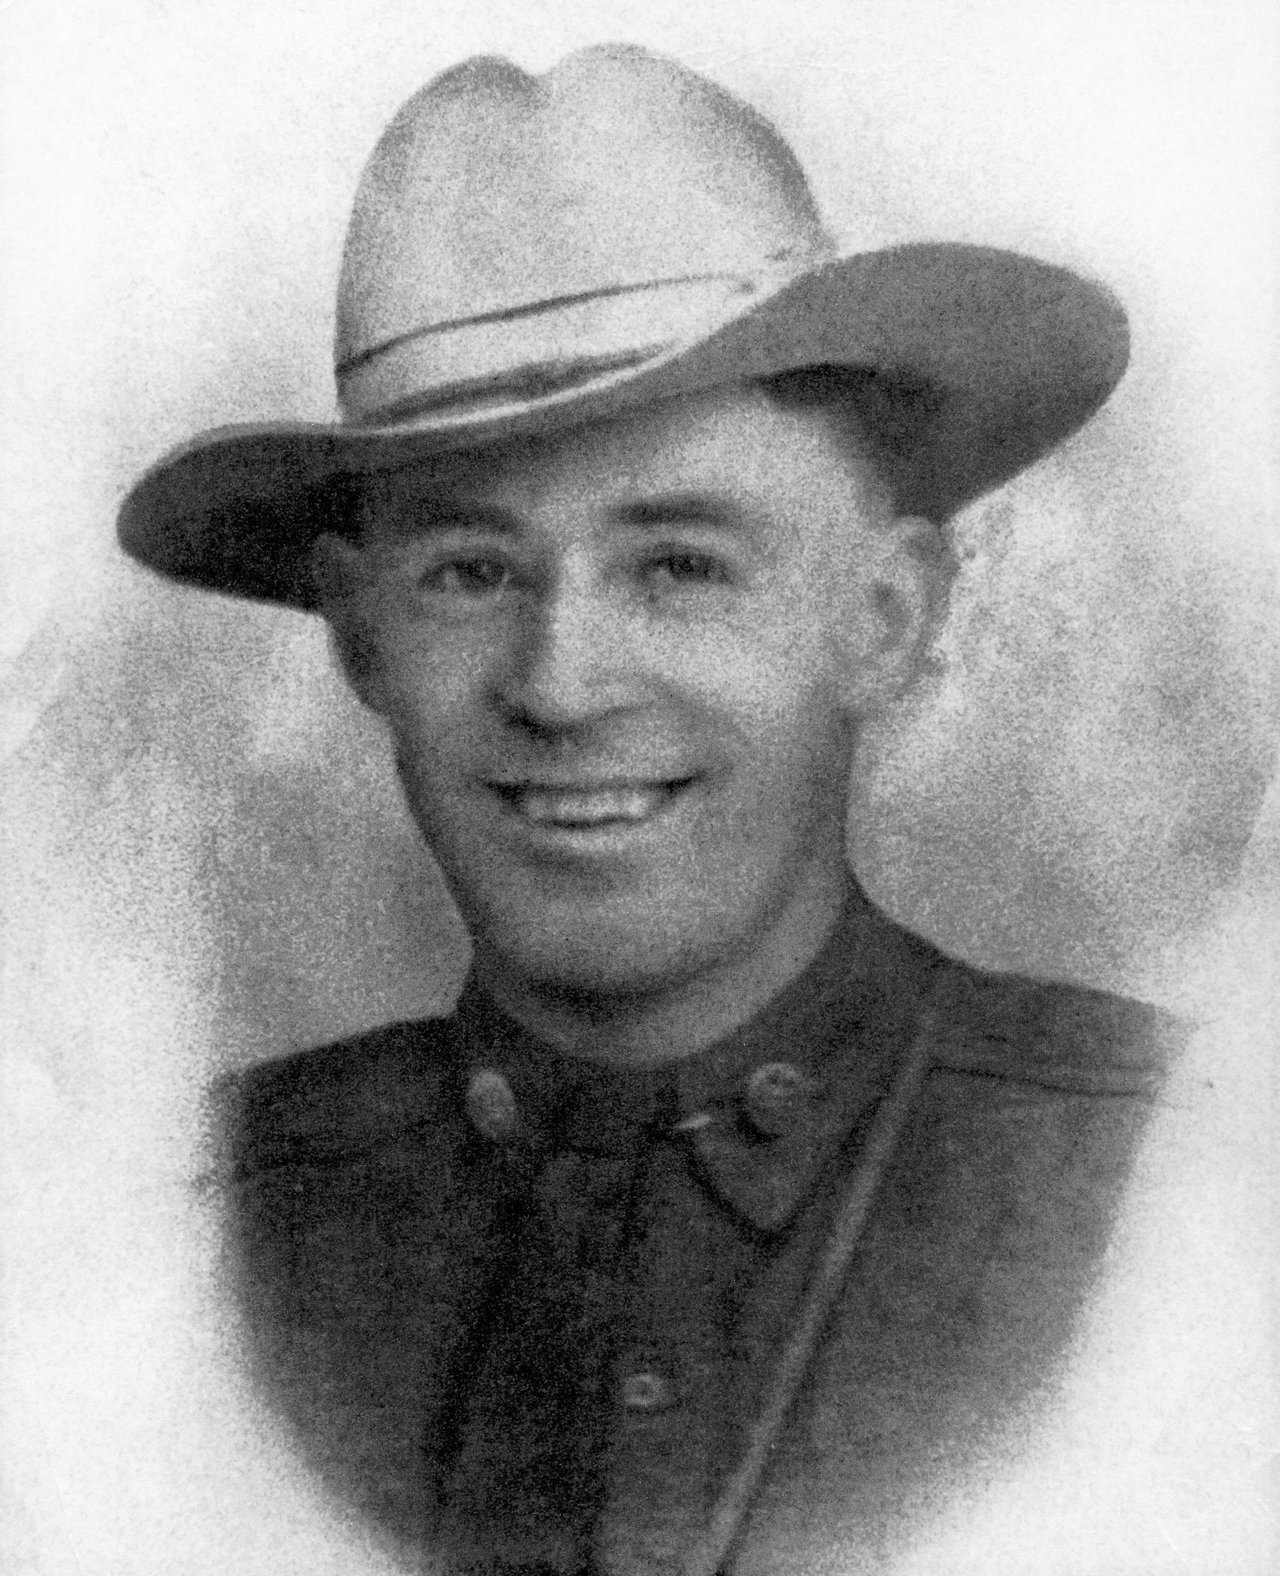 March 3, 1937 - Sergeant John H. Lockhart